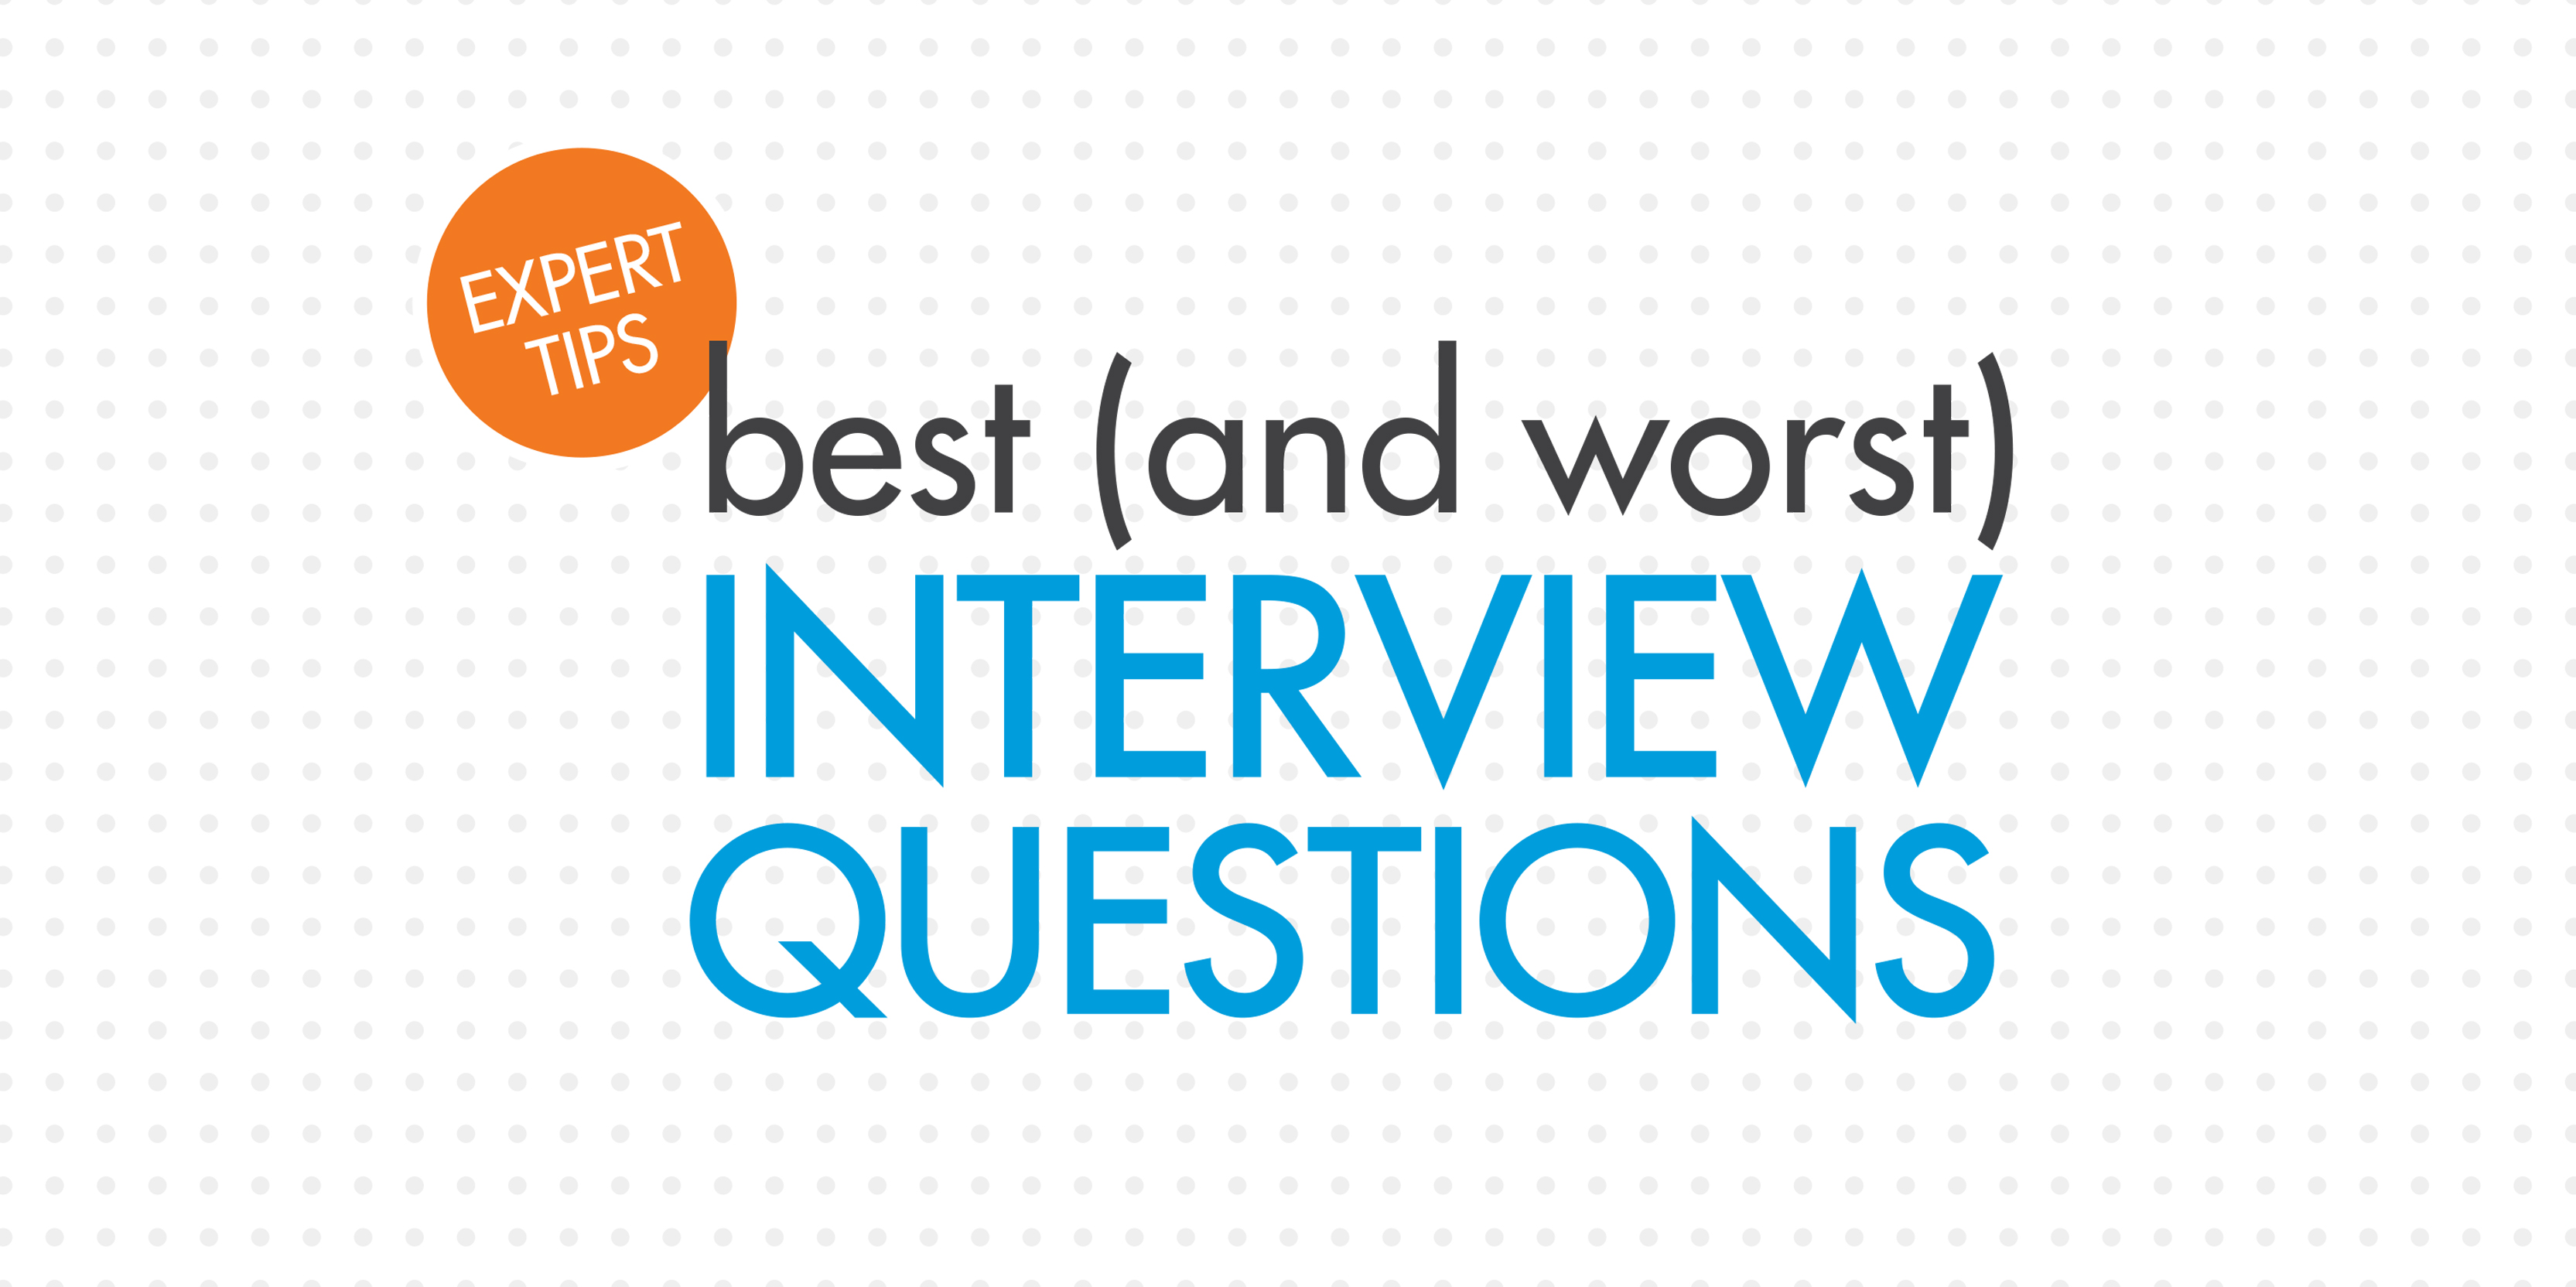 question to ask during interview